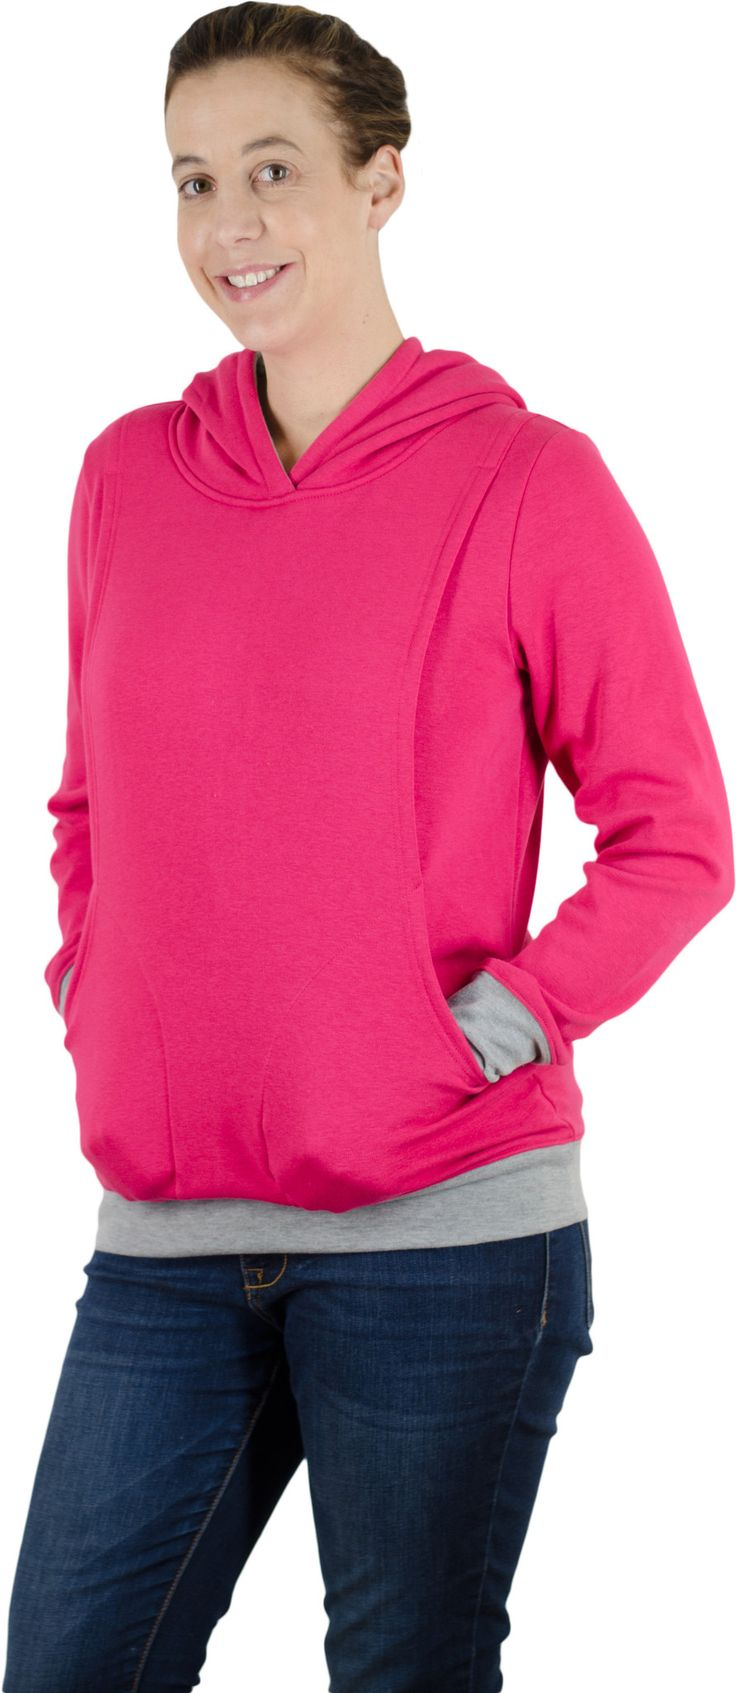 The Latched Mama Hoodie